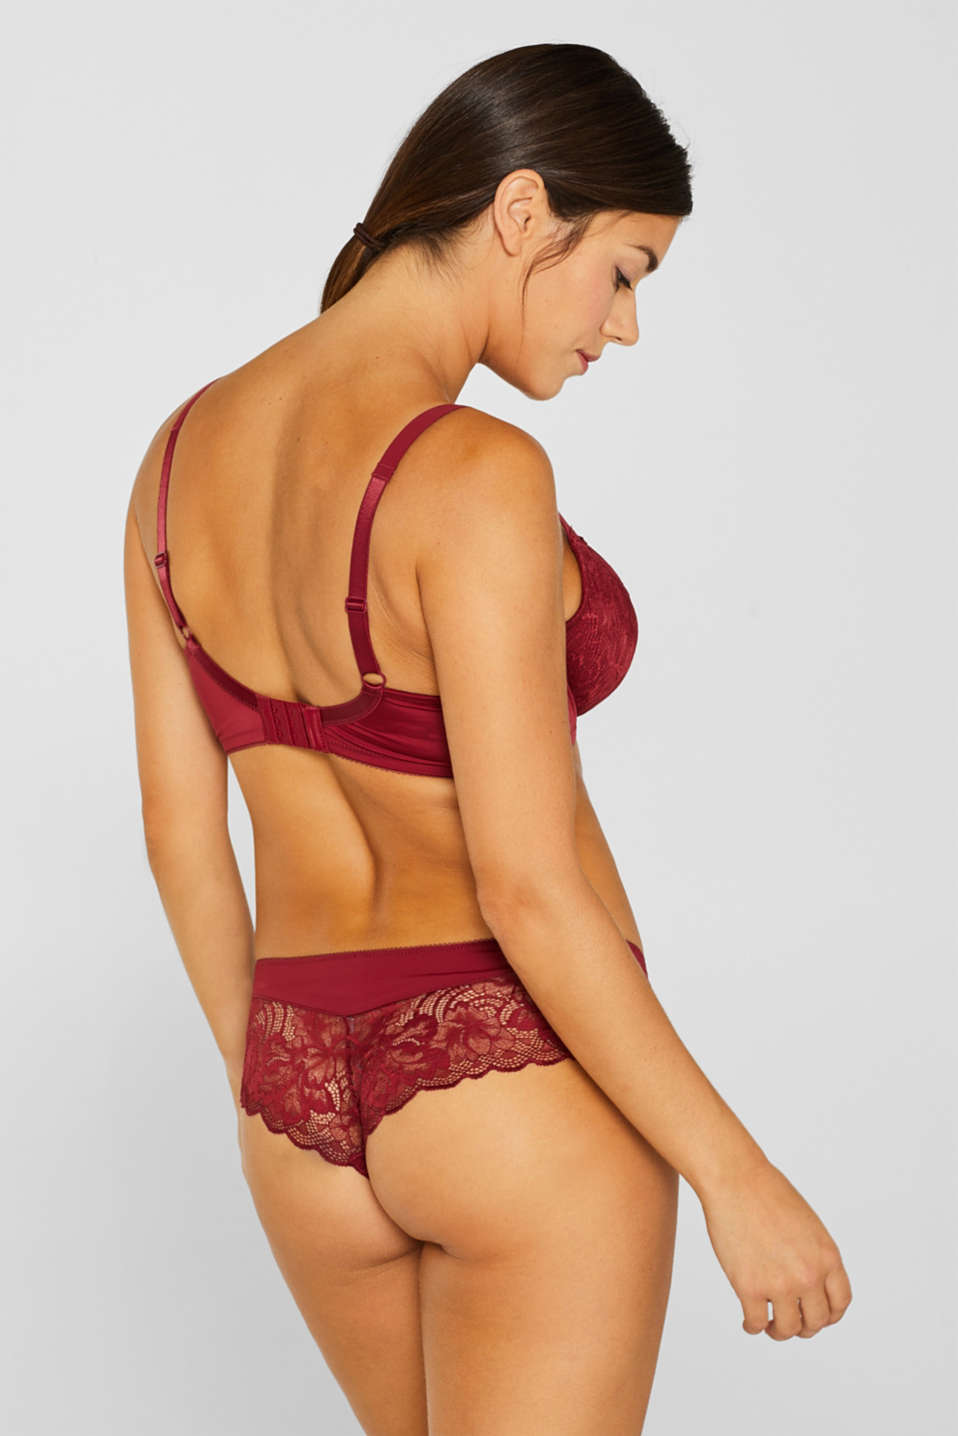 Unpadded lace bra for larger cup sizes, DARK RED, detail image number 1